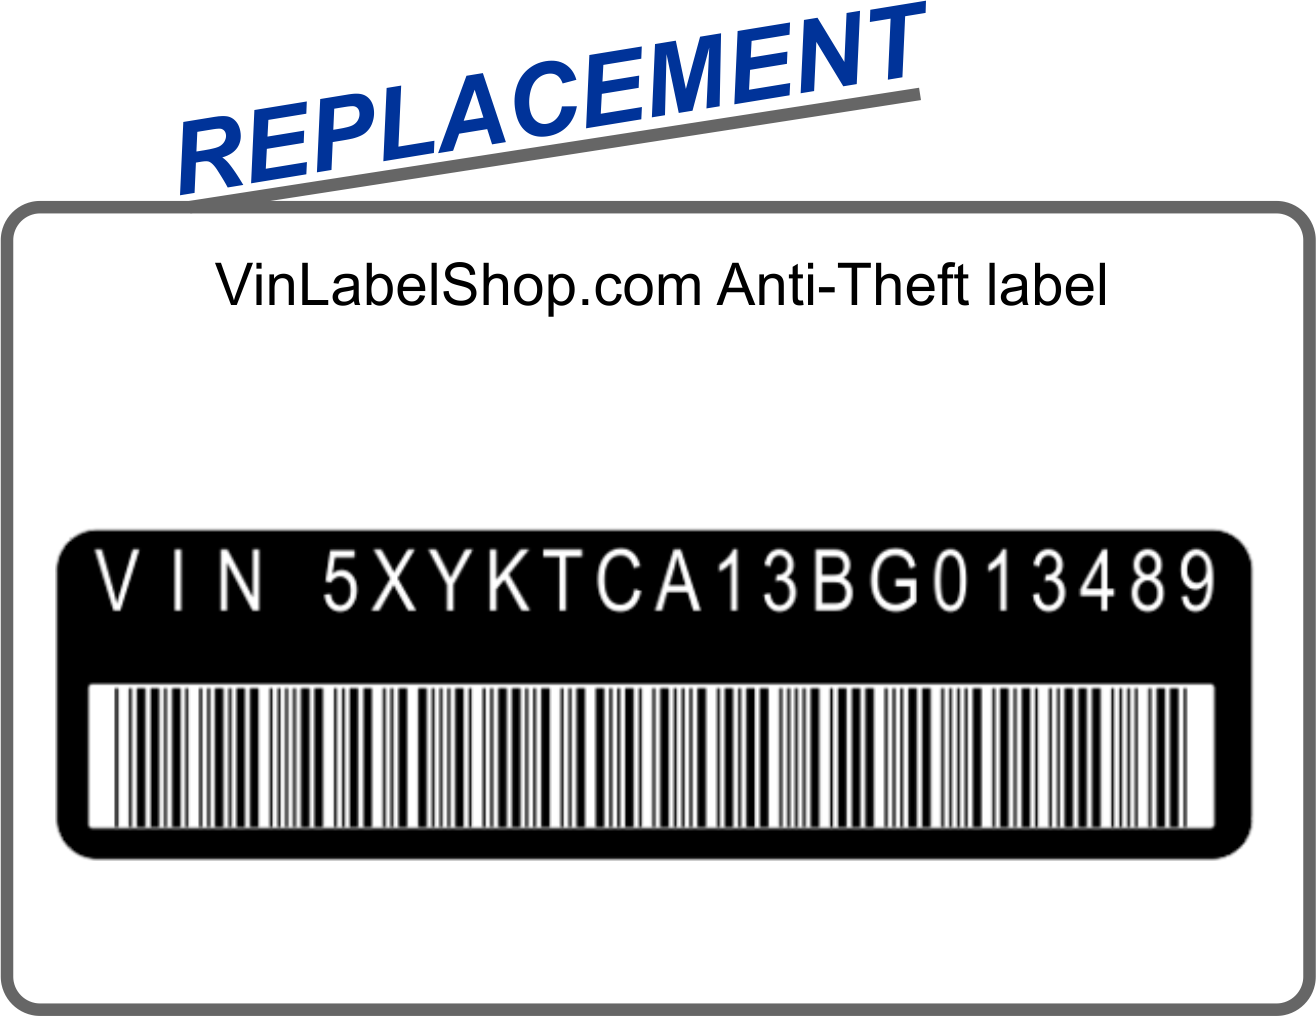 Replacement anti-theft vin label